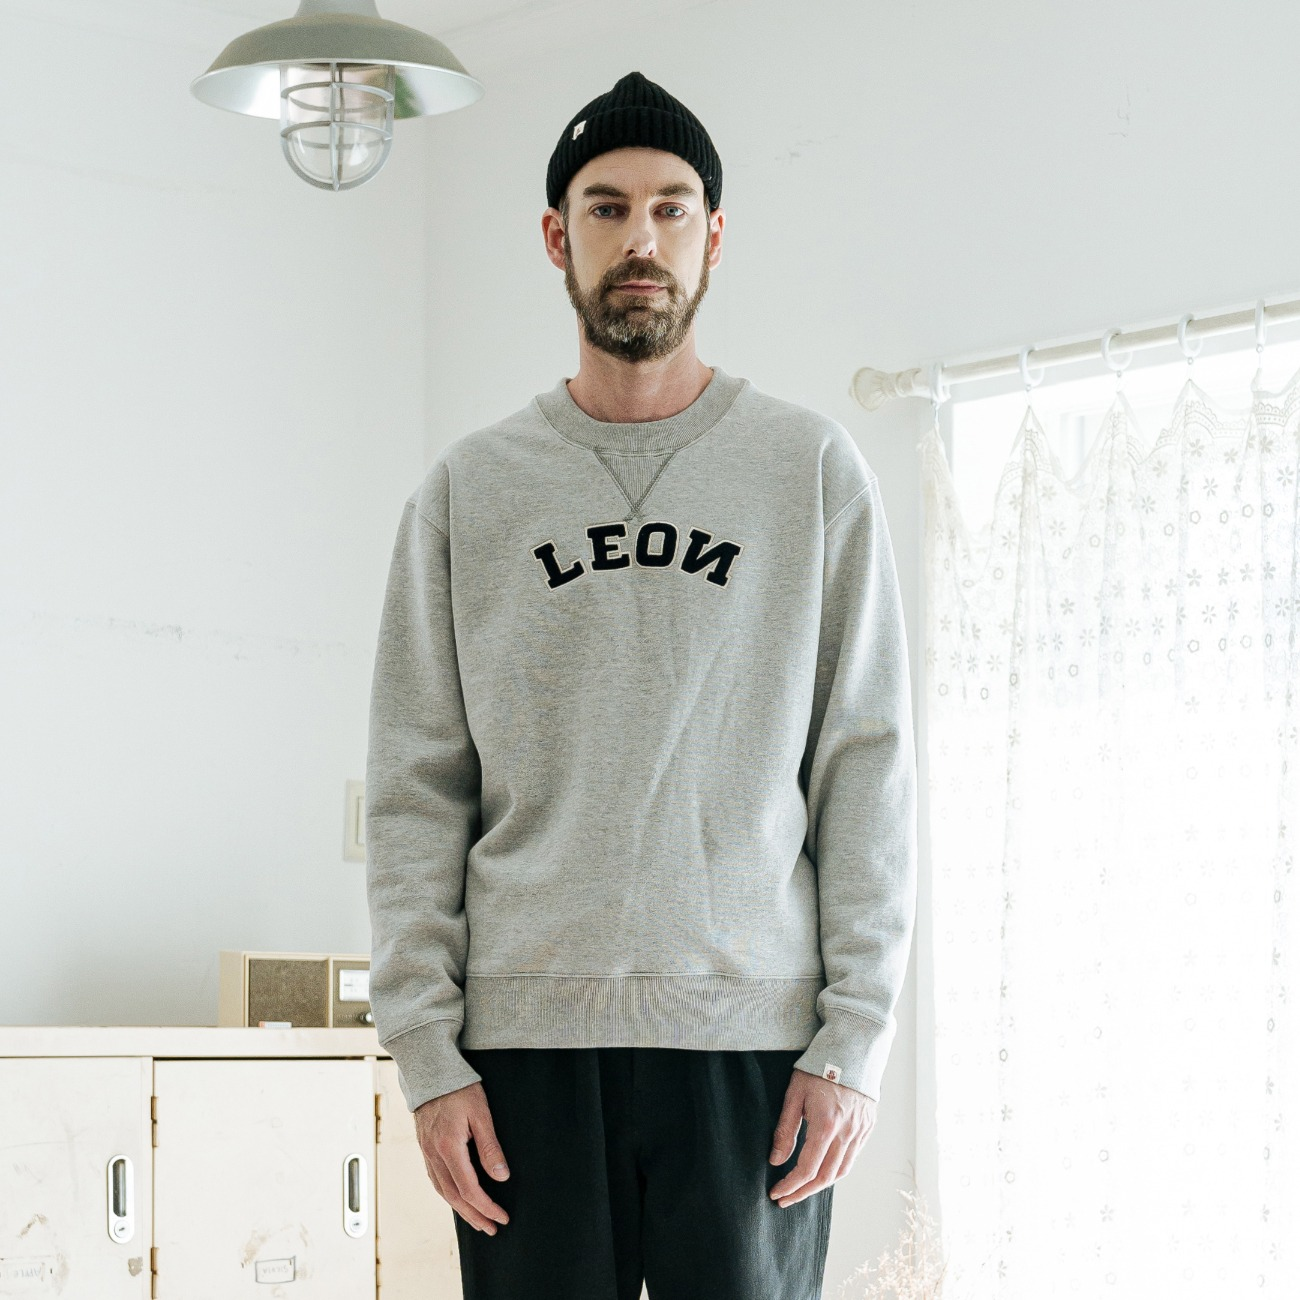 890g Leon Sweat Shirt